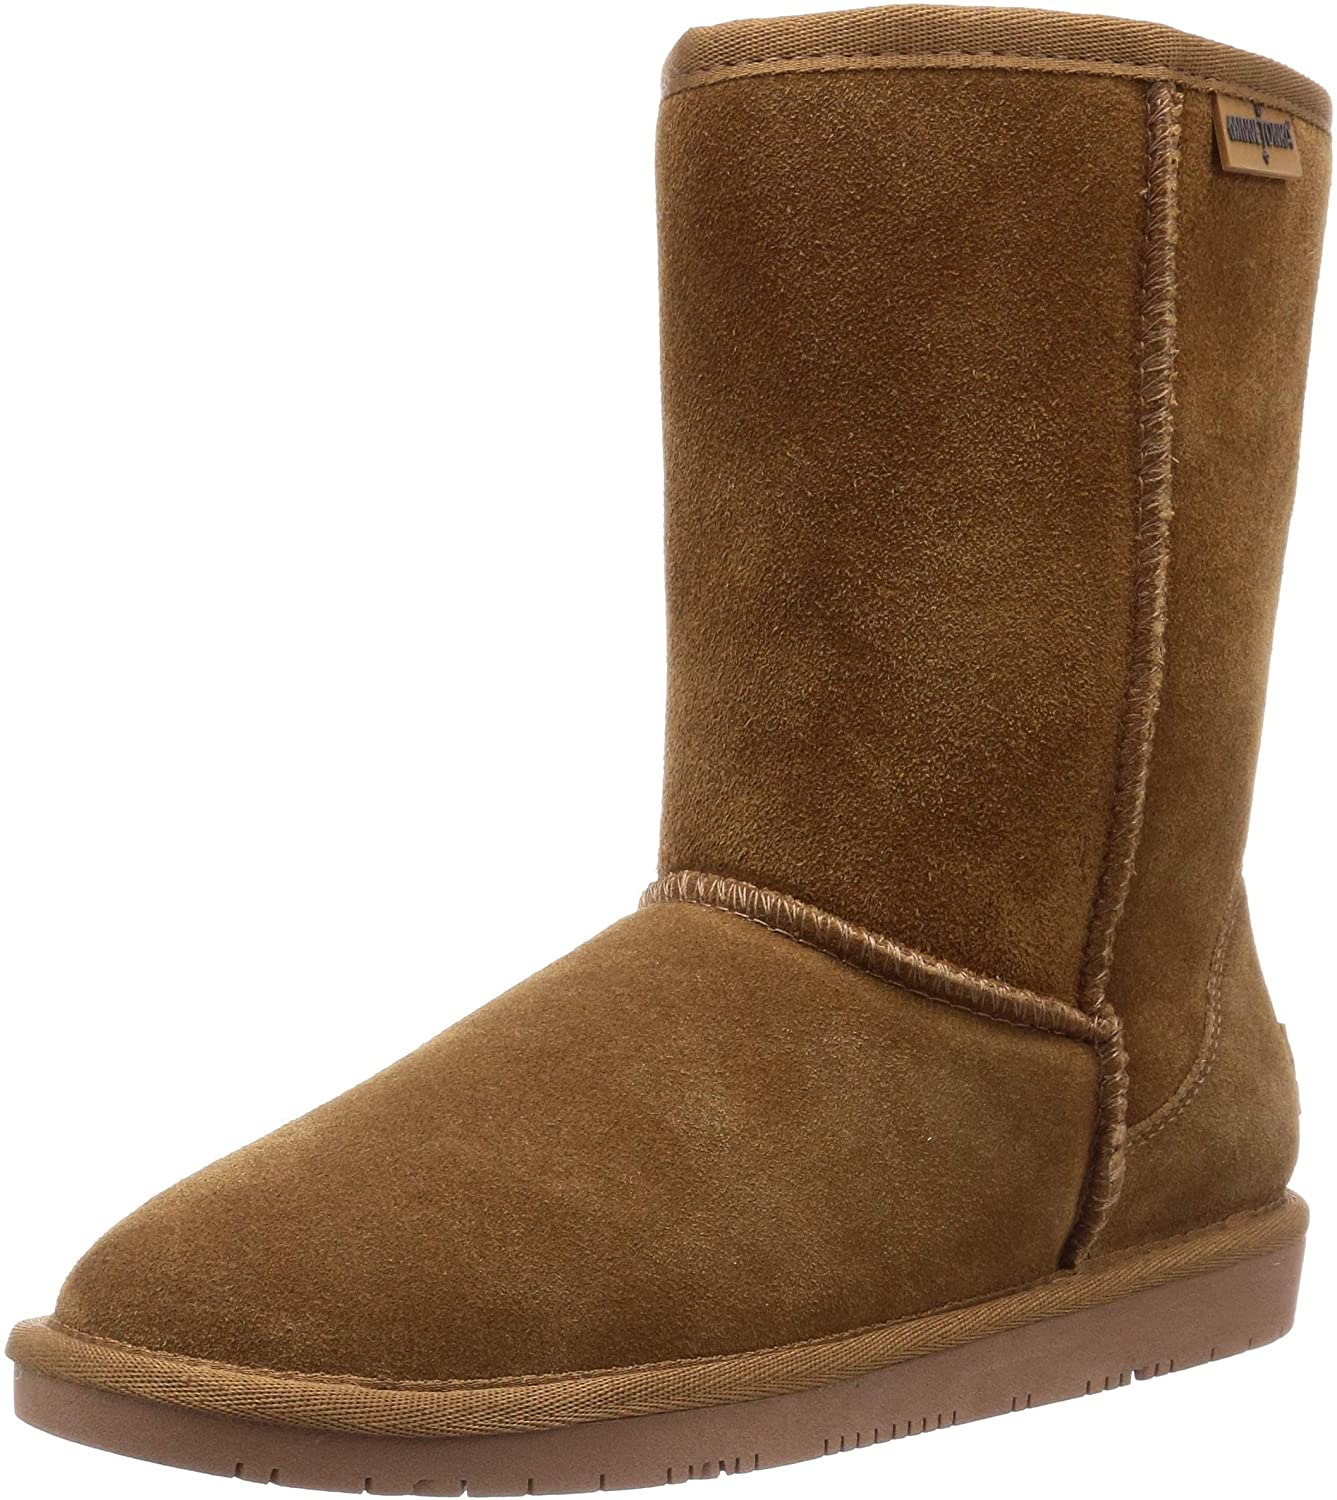 Women's Minnetonka Olympia Short Boot Tan in Tan